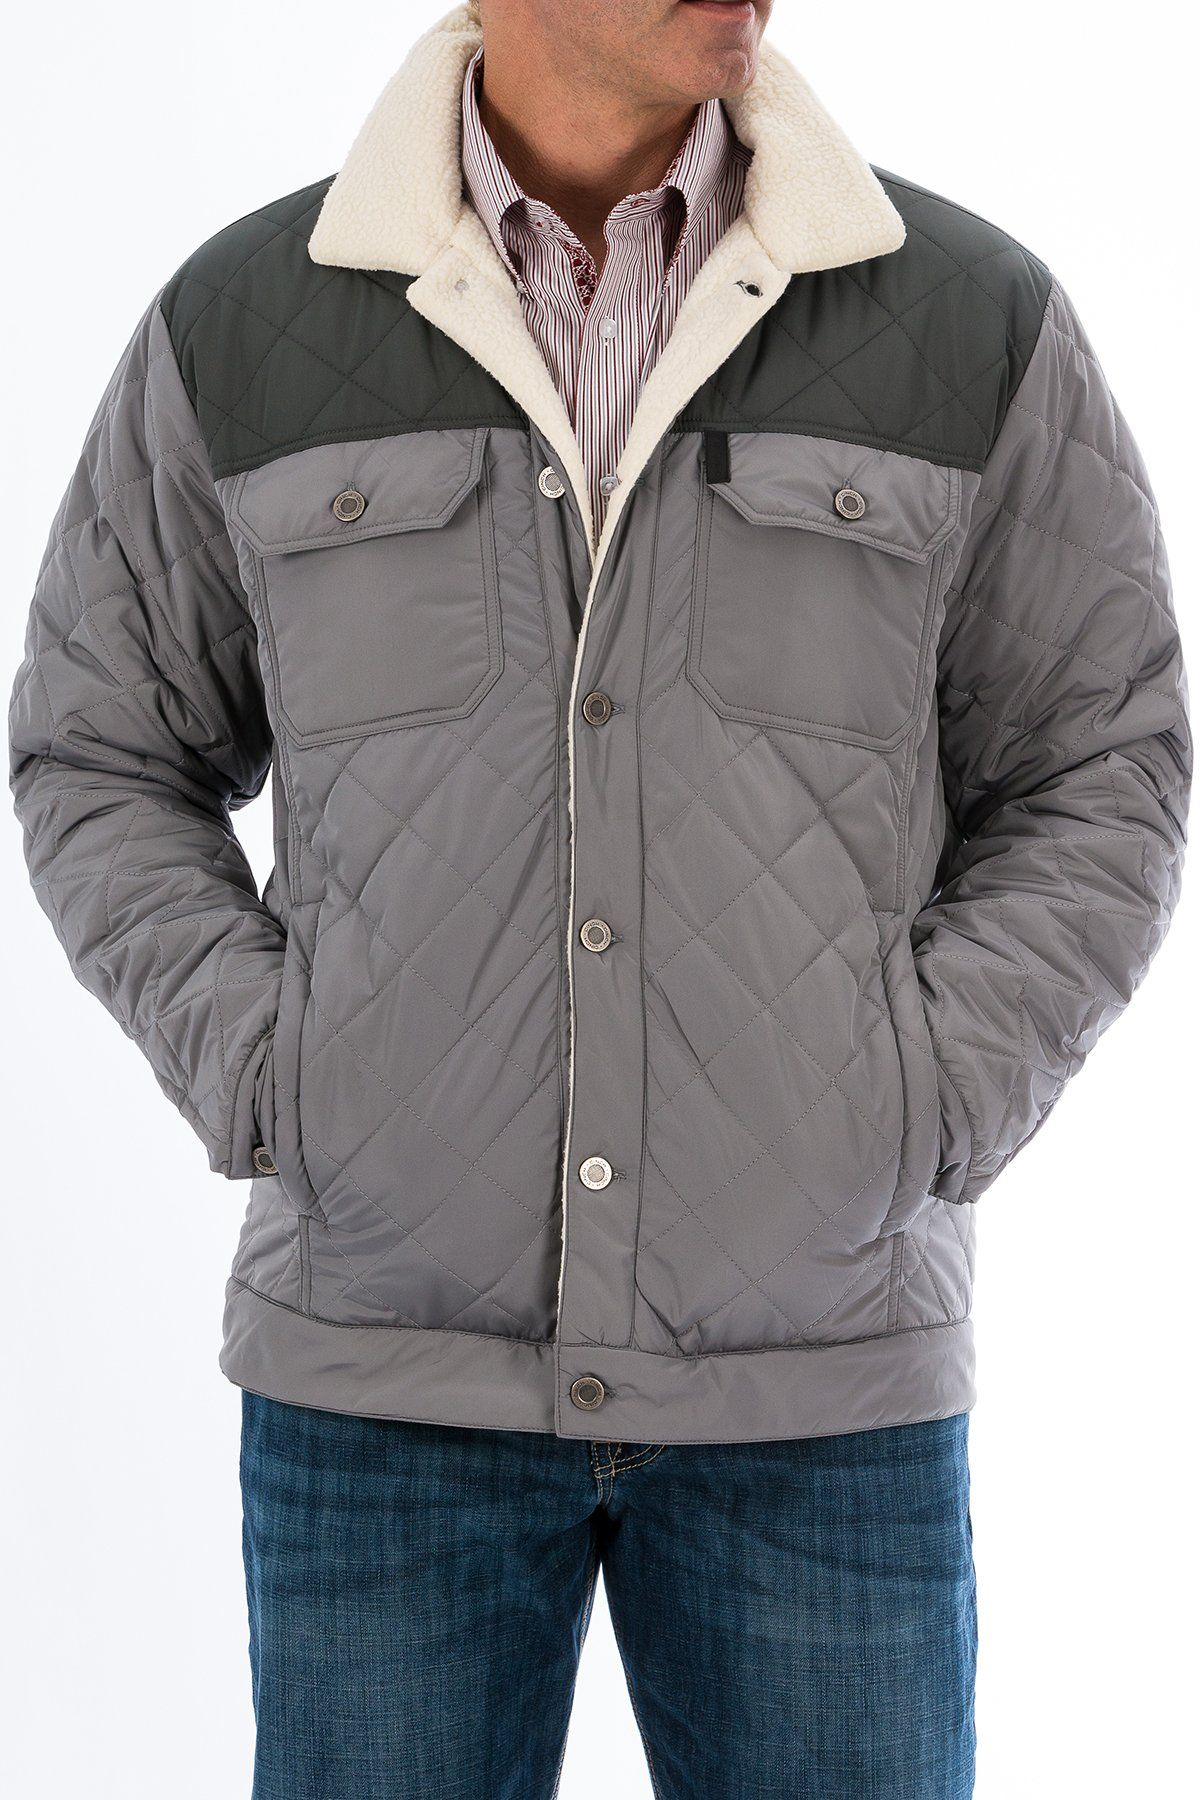 934f51df77f2 Cinch Mens Quilted Shirt Jacket - Gray MWJ1093001. Details